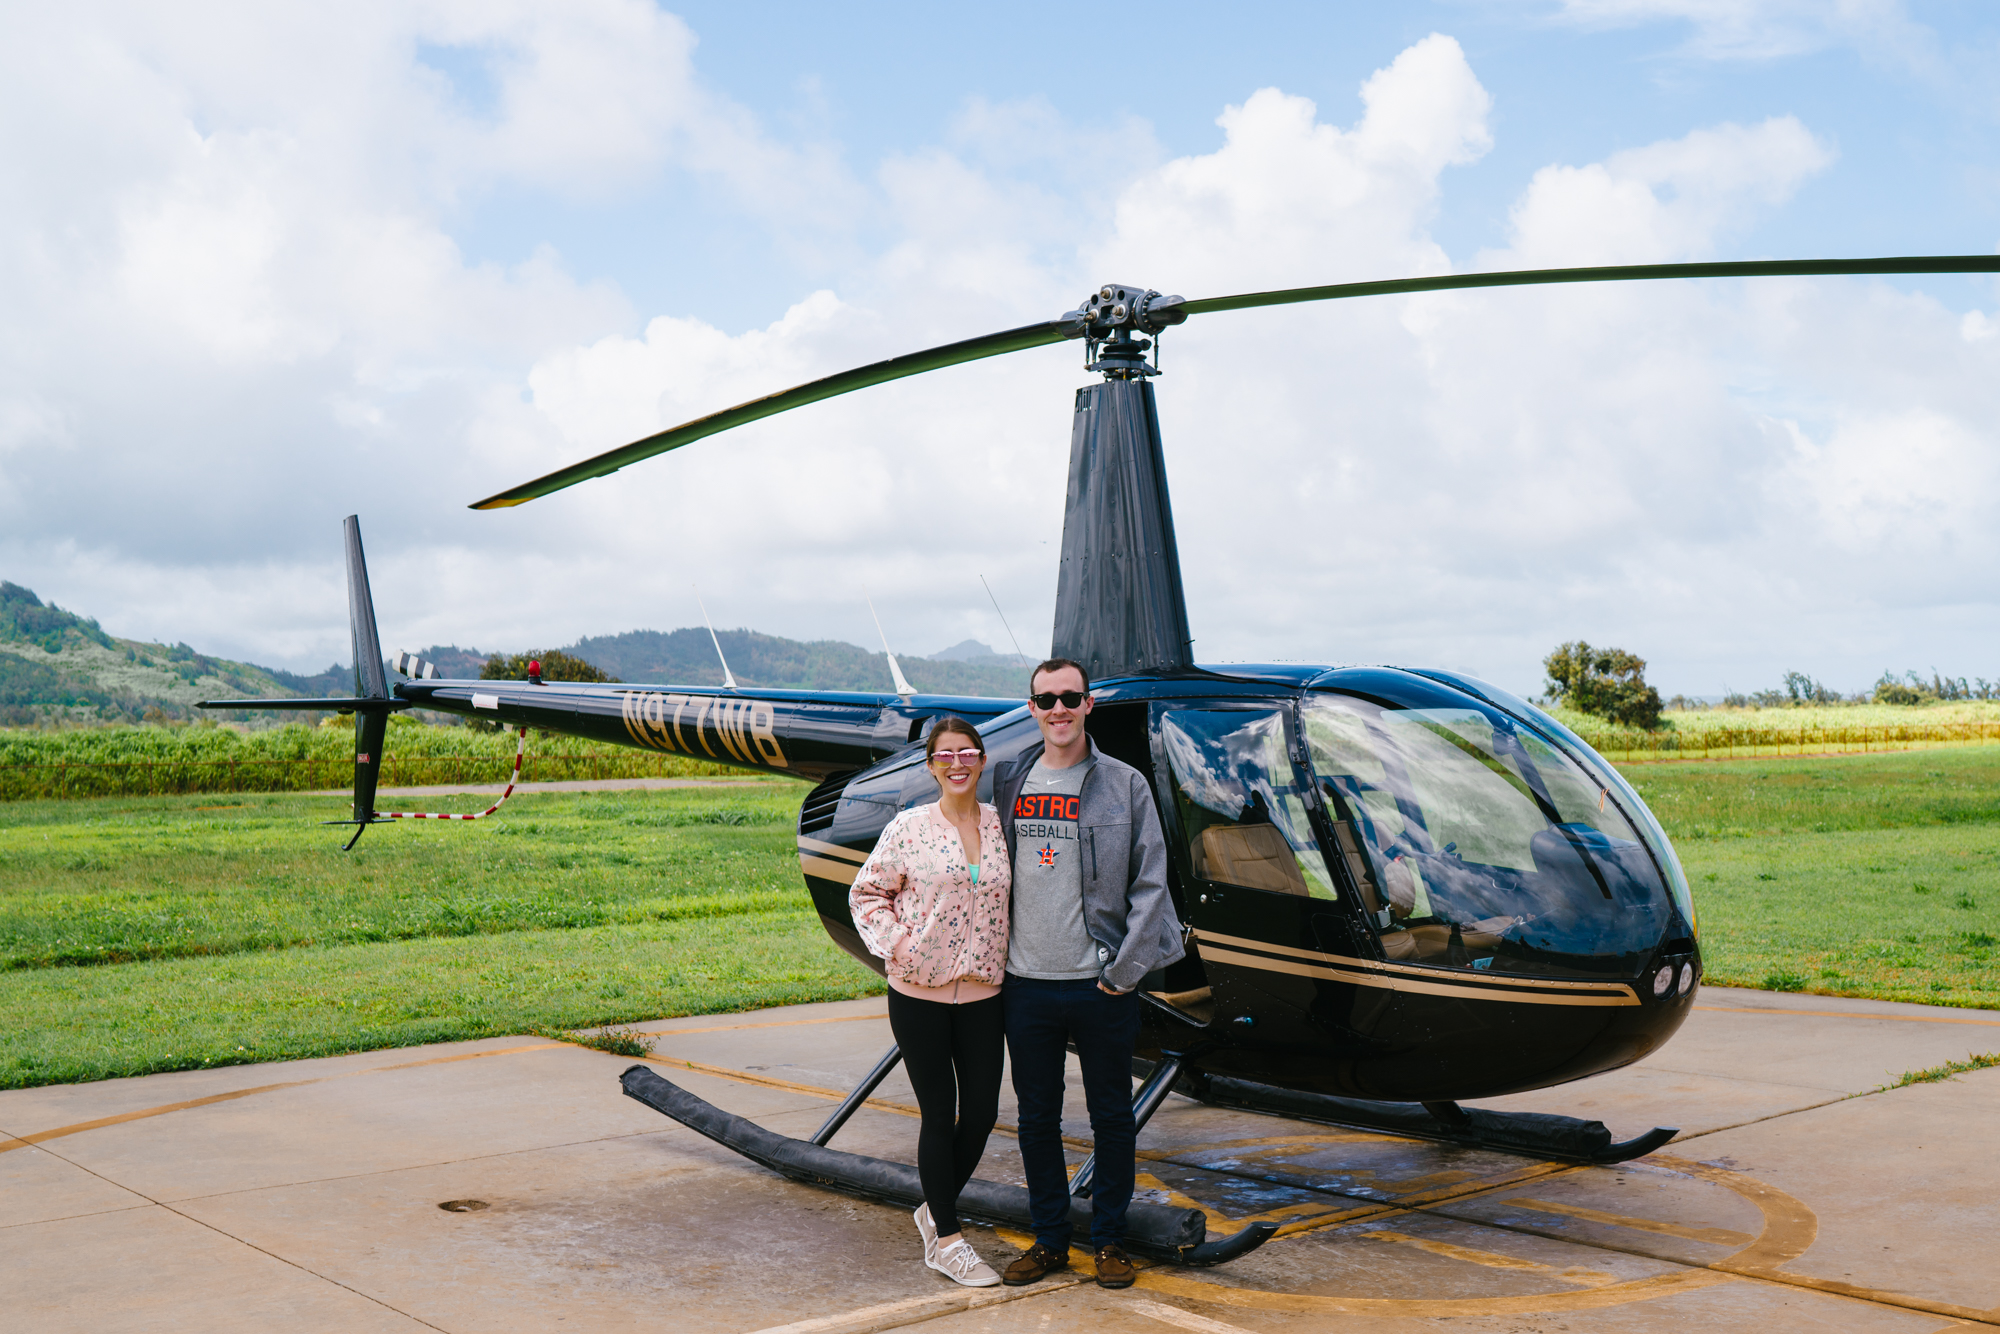 We loved our tour with Mauna Loa Helicopter Tours!